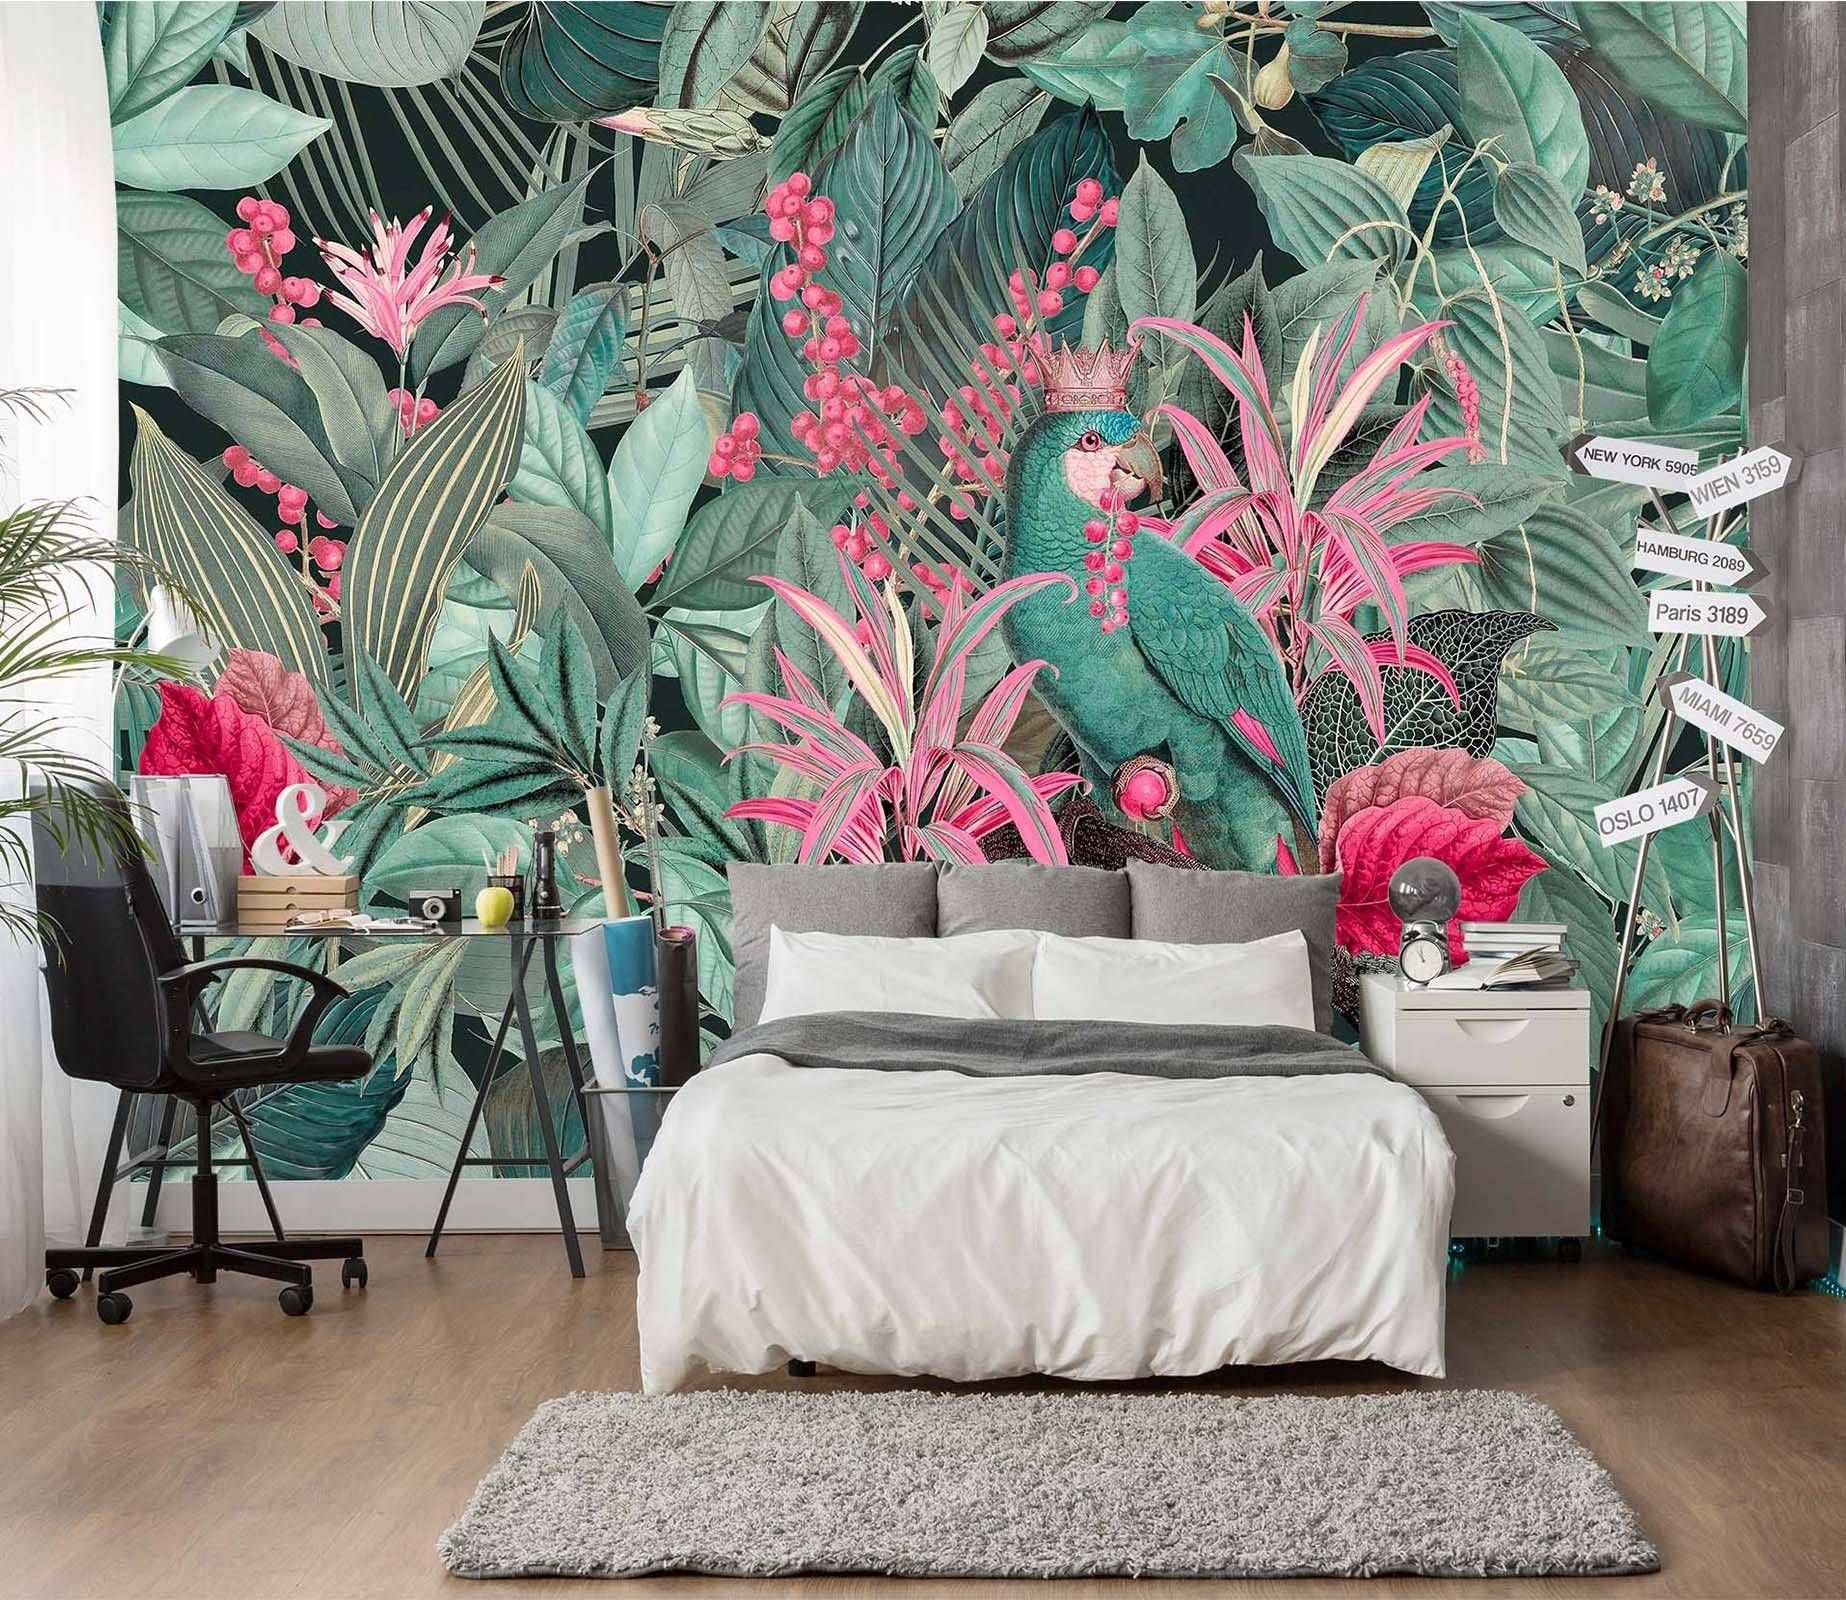 3D Forest Flowers 1003 Andrea haase Wall Mural Wall Murals Dai